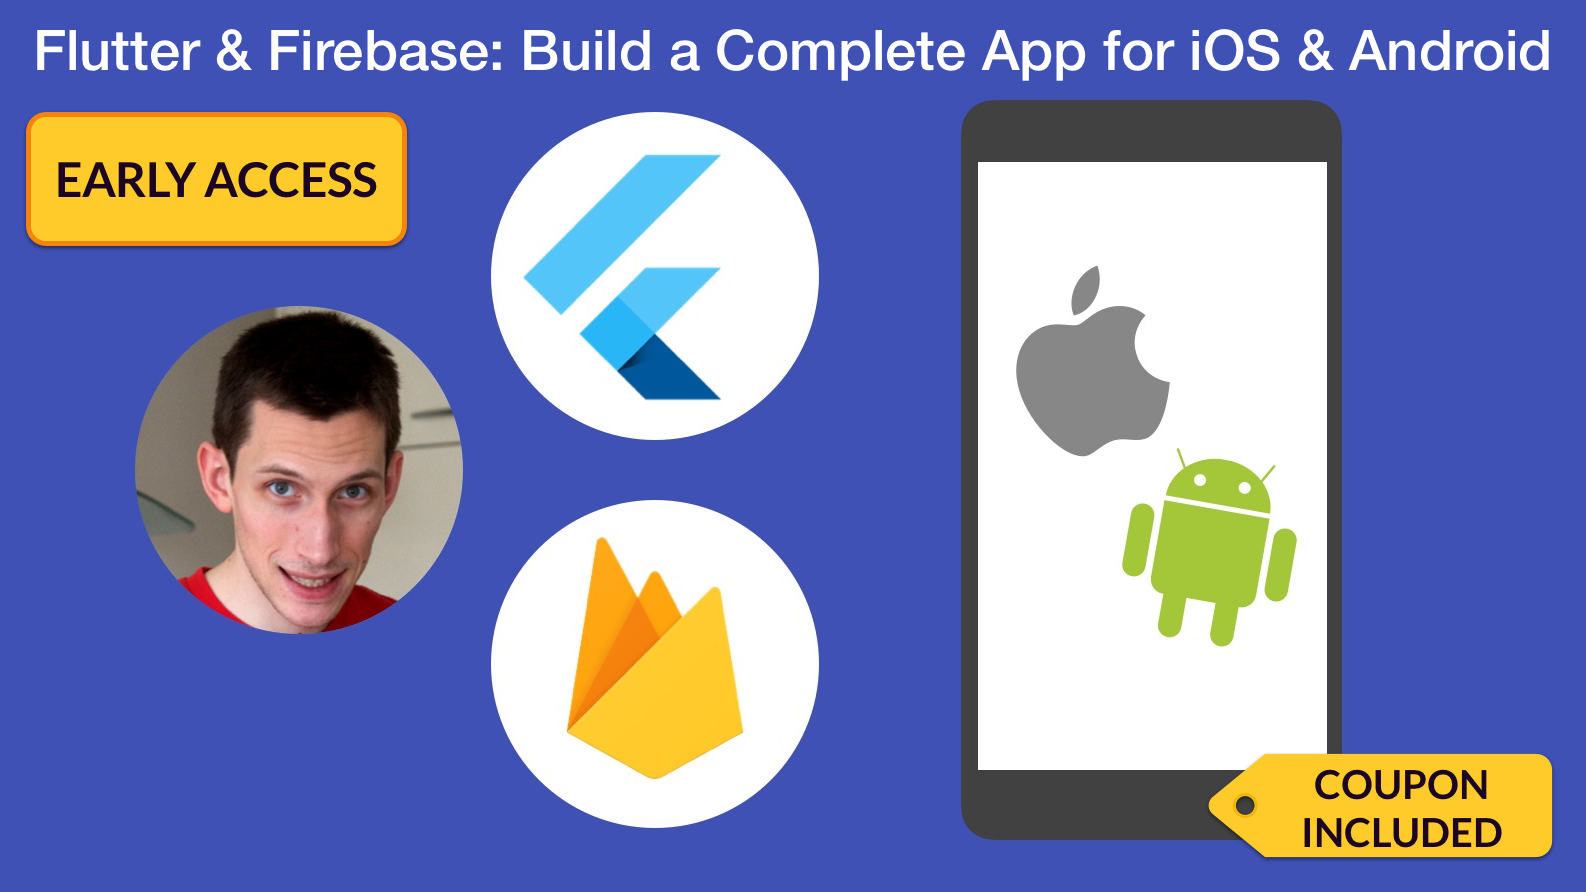 Flutter & Firebase Udemy Course — Now Available for Early Access